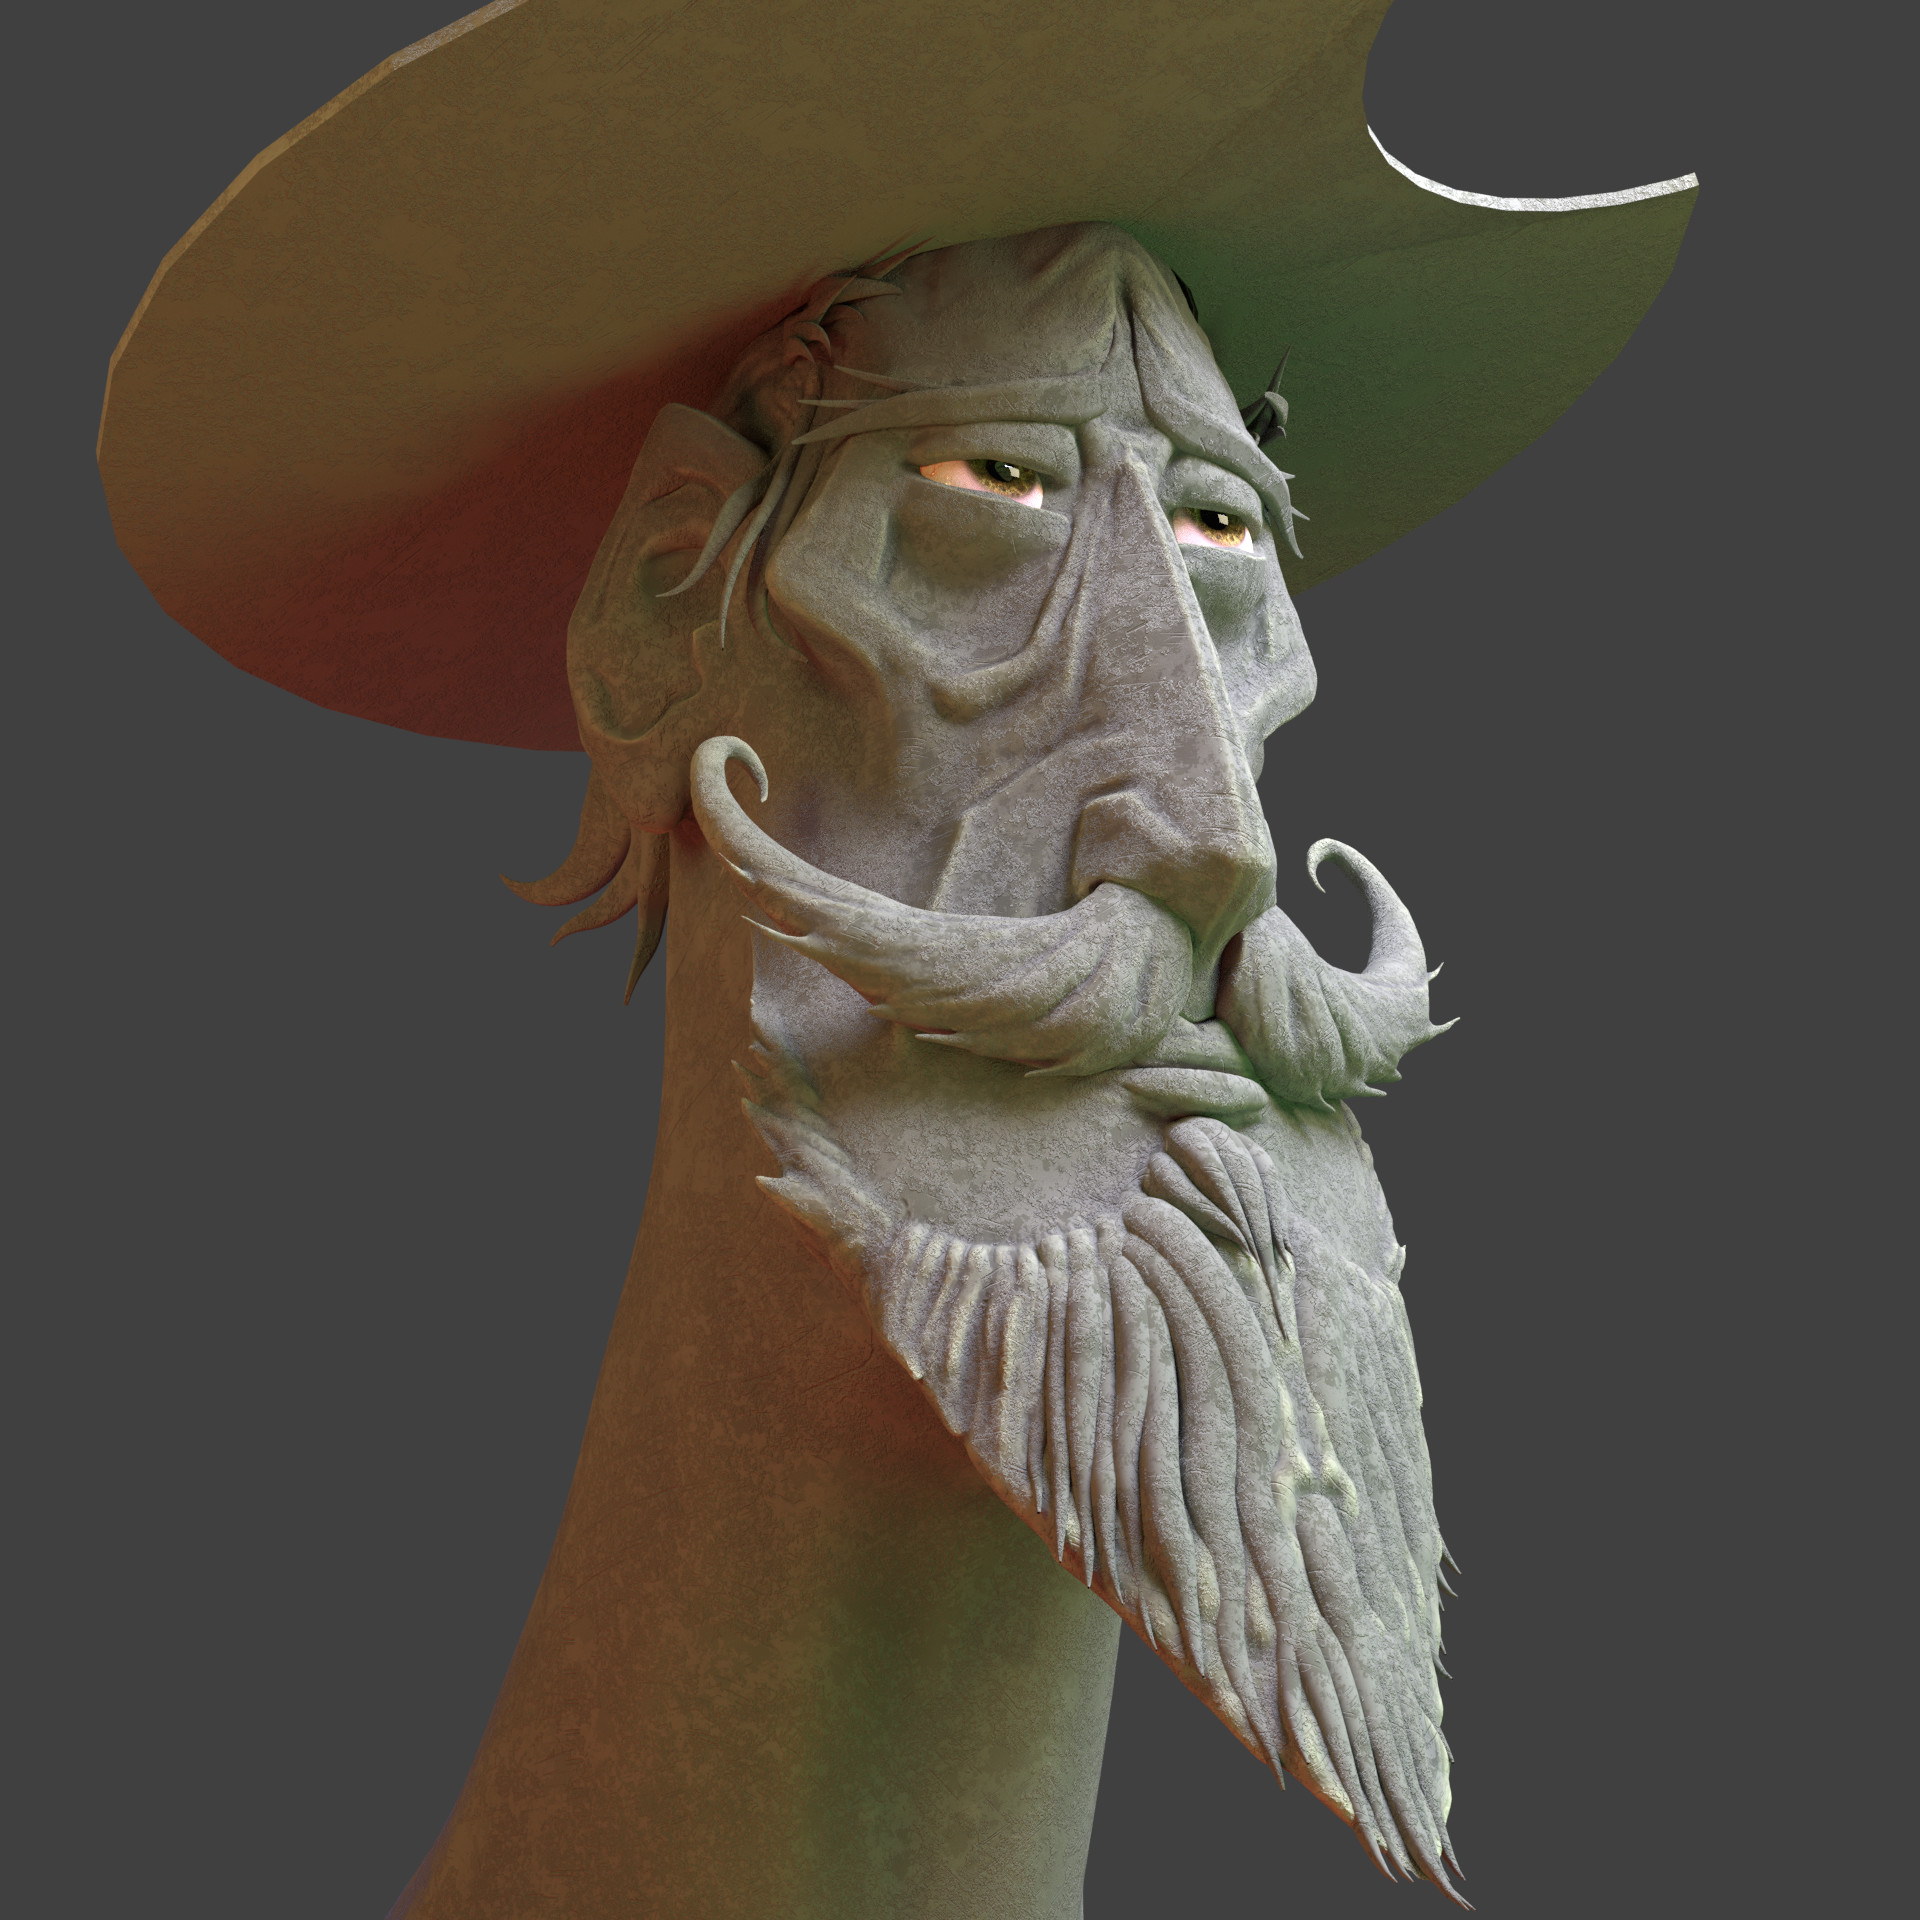 Concept, El Quijote by @JonSommariva